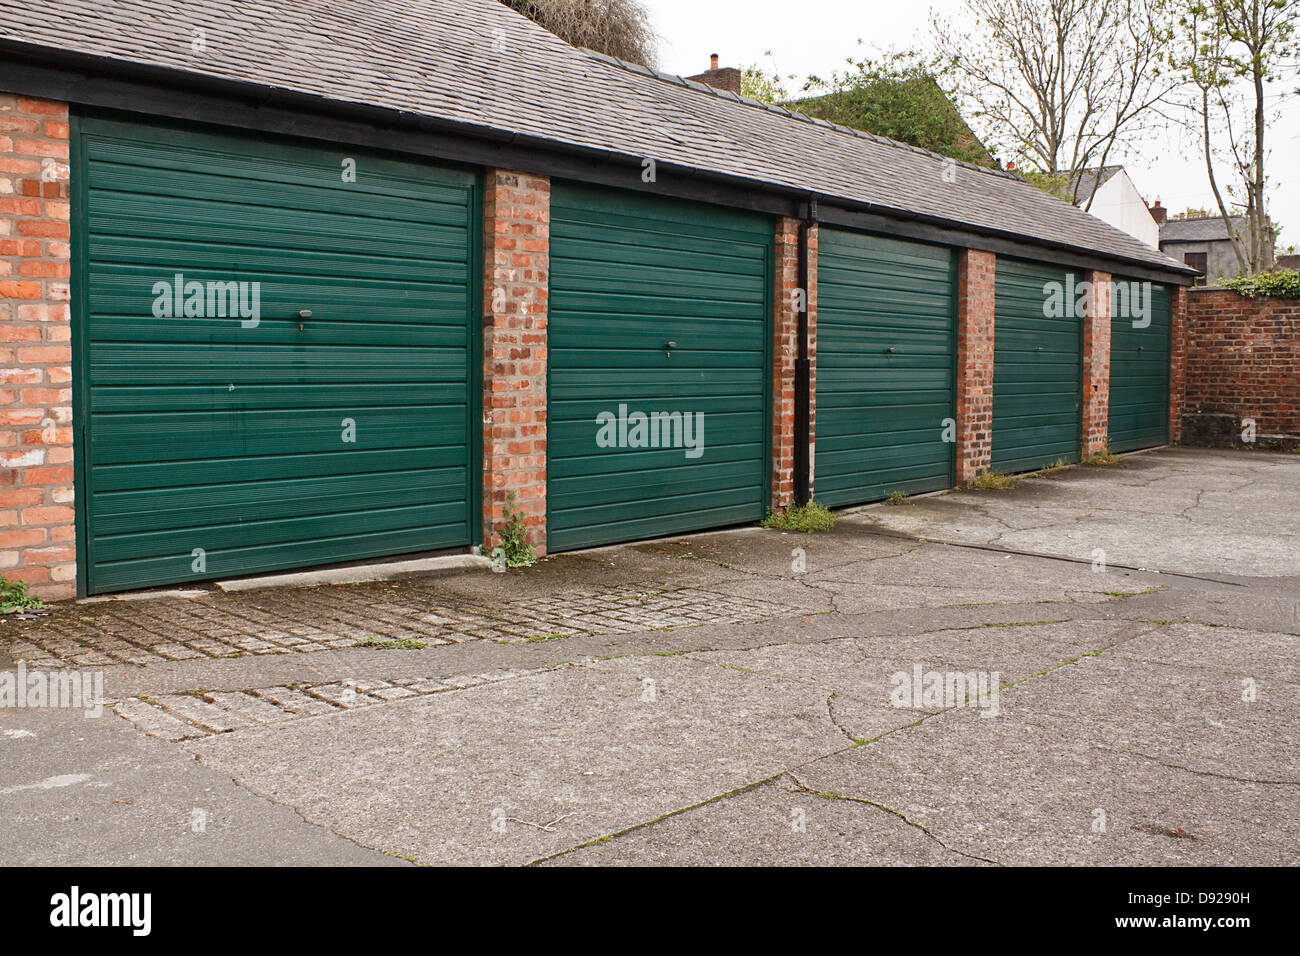 Residential garage block available to rent or lease often used for storage - Stock Image